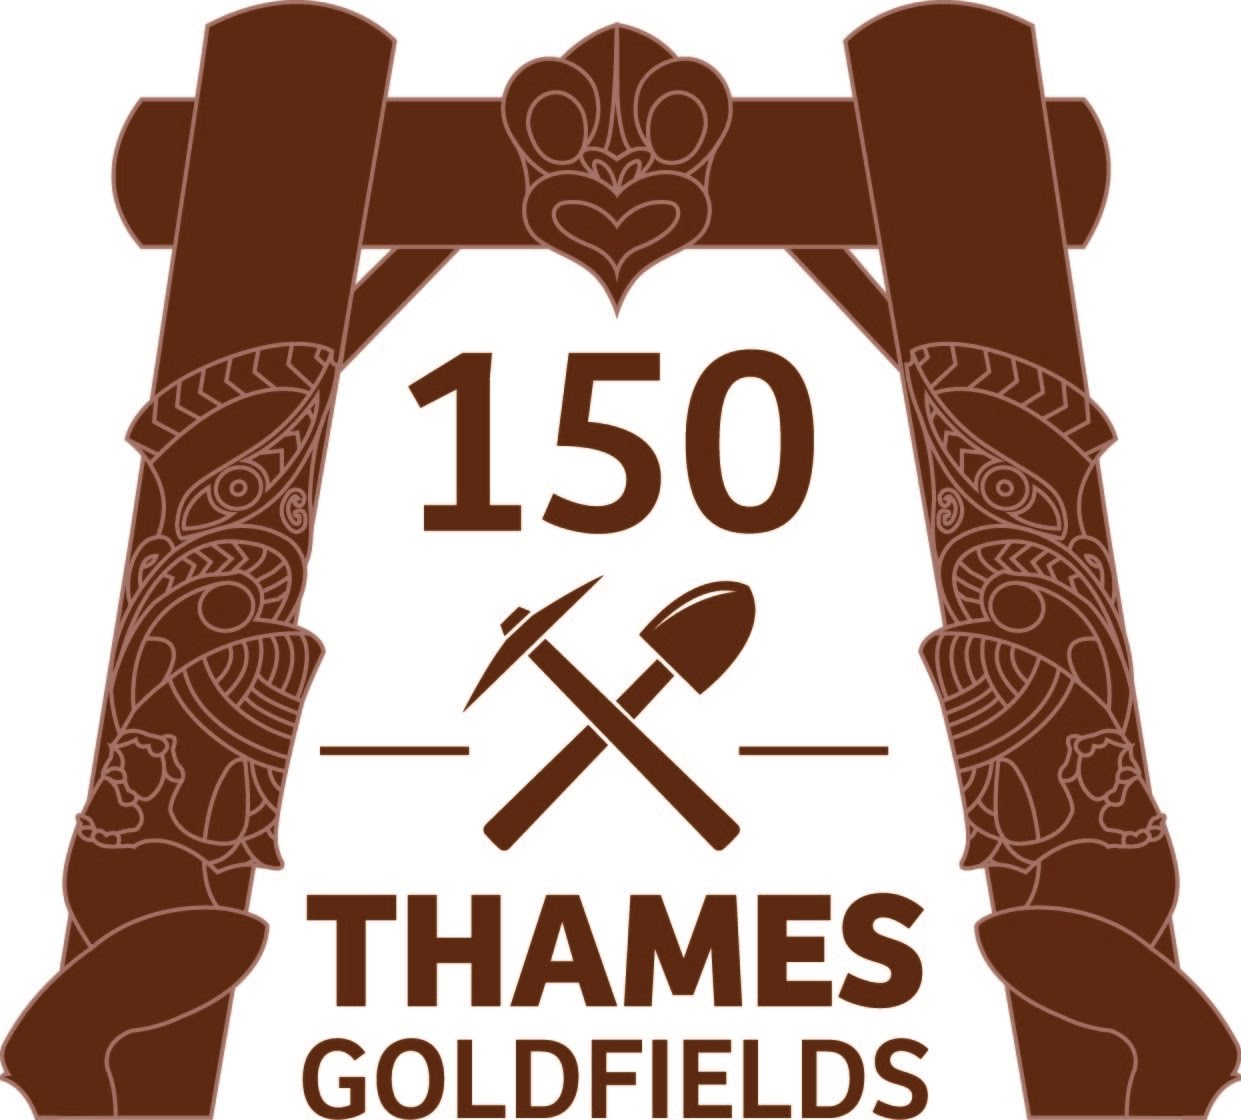 150 years since the opening of the Thames goldfield